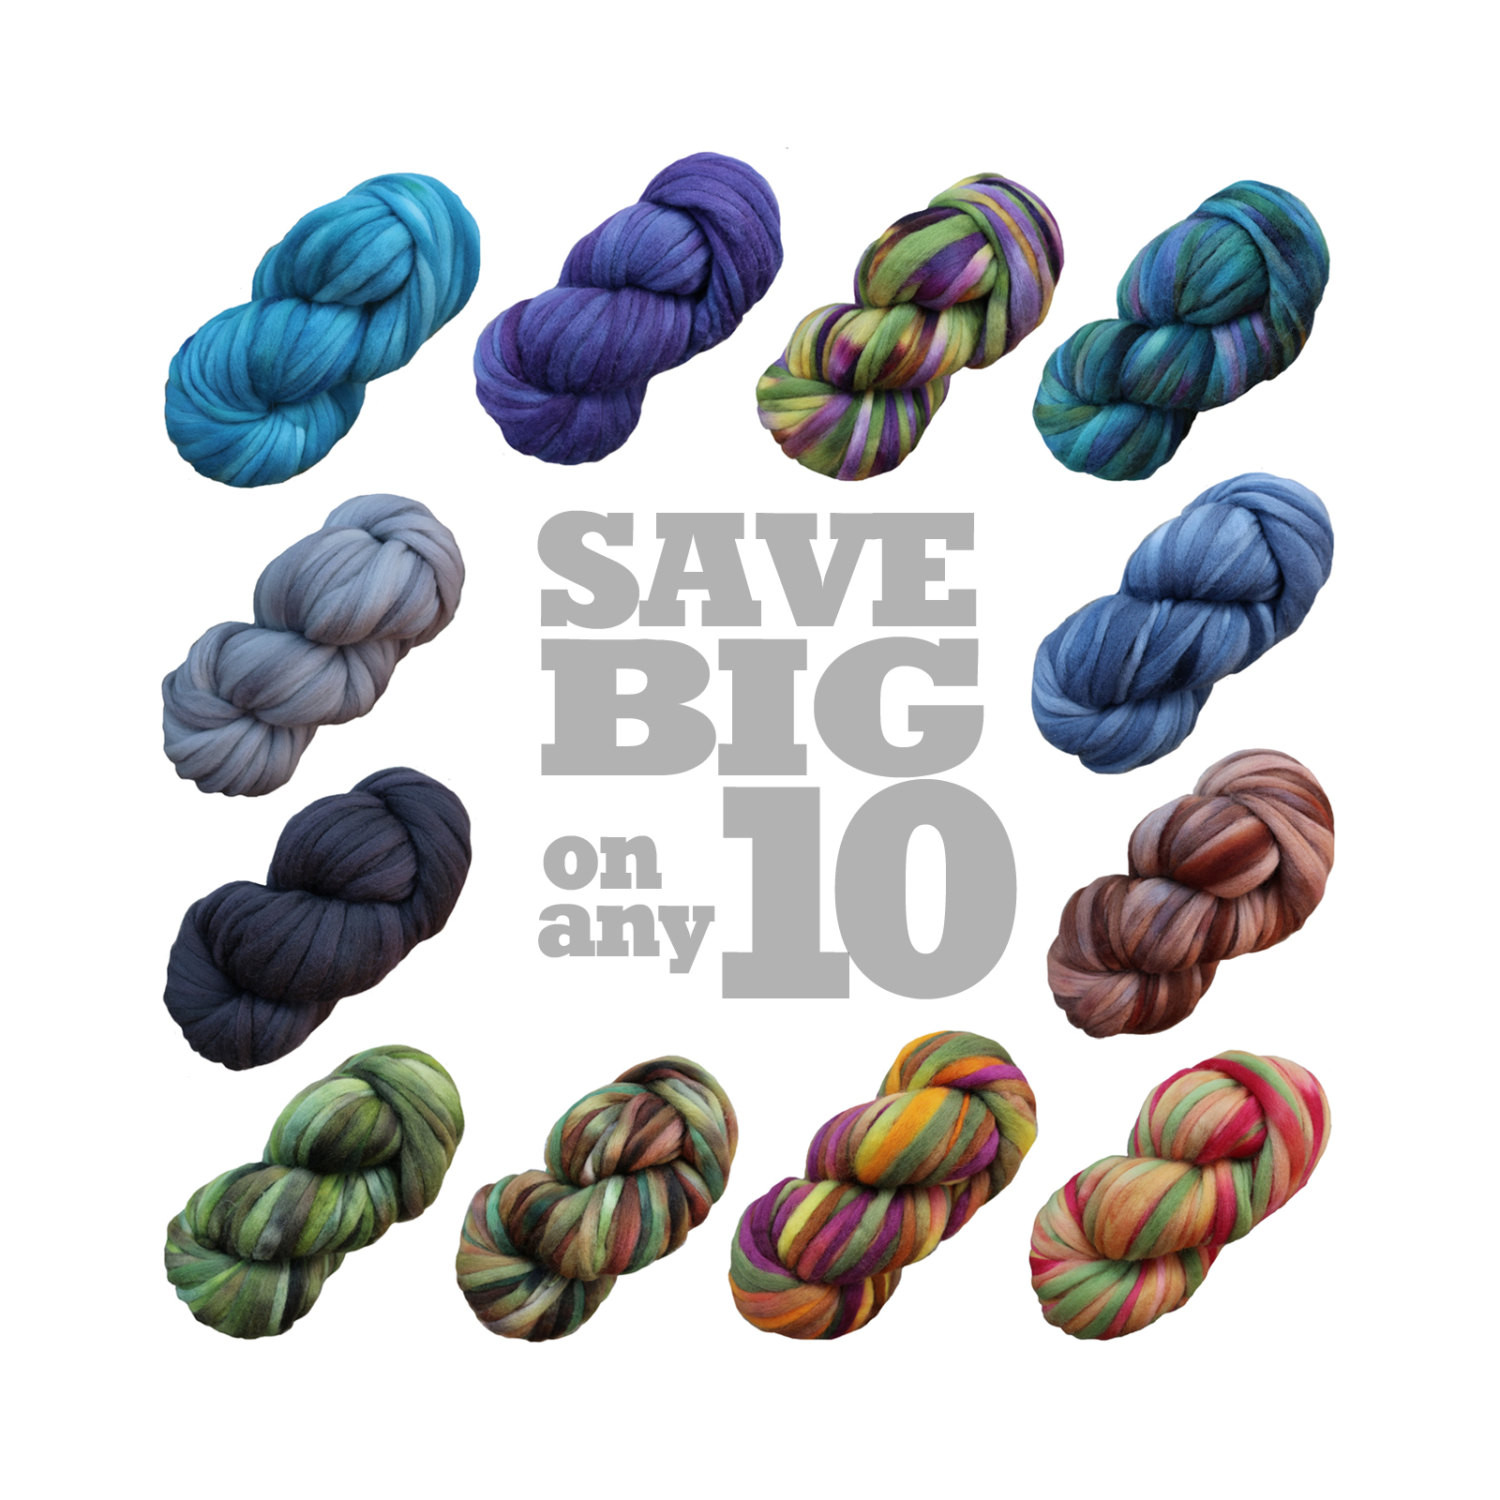 Cheap Super Bulky Yarn Lovely Bulk Discount 10 Skeins Super Zippy Hand Dyed Extra Thick soft Of Brilliant 48 Models Cheap Super Bulky Yarn